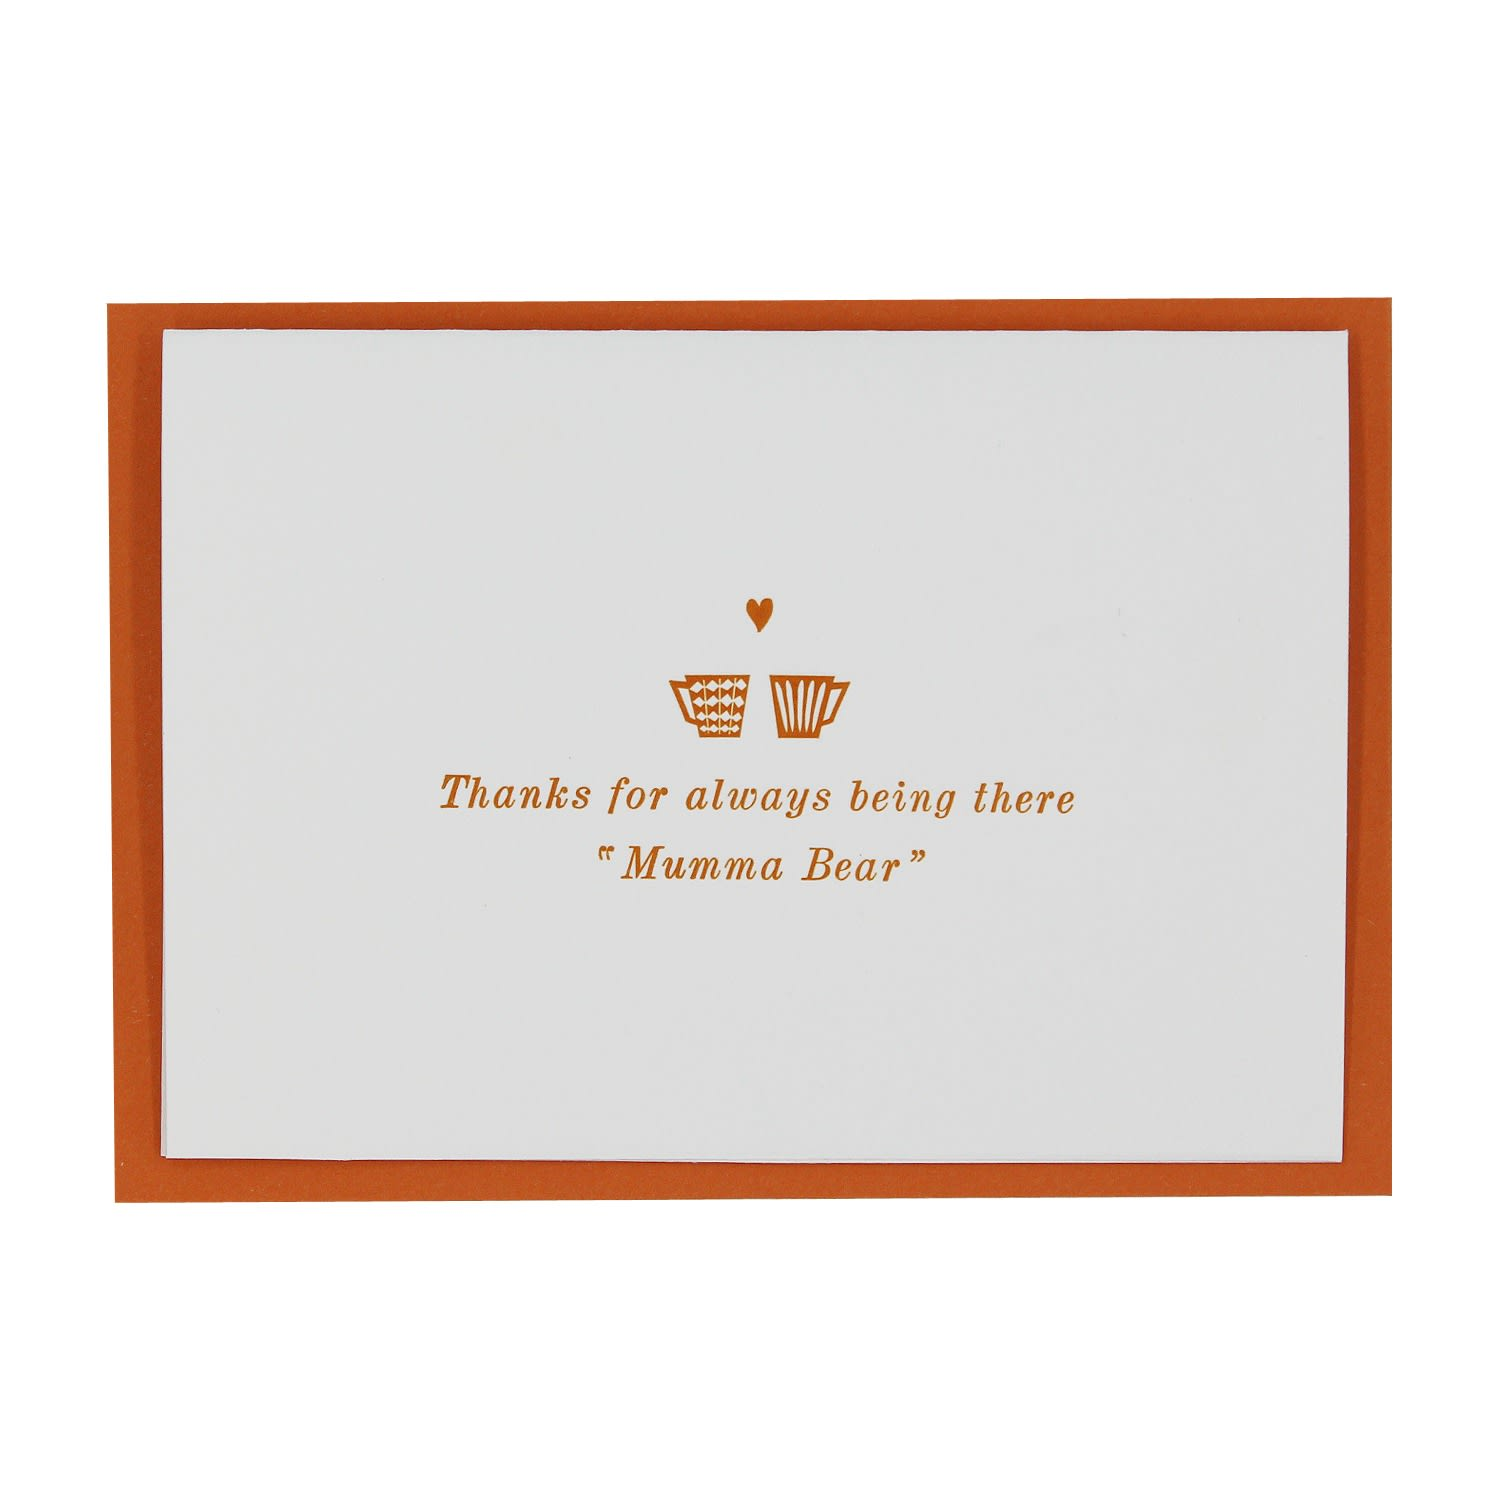 Letterpress thanks for always being there mumma bear greetings card letterpress thanks for always being there mumma bear greetings card image m4hsunfo